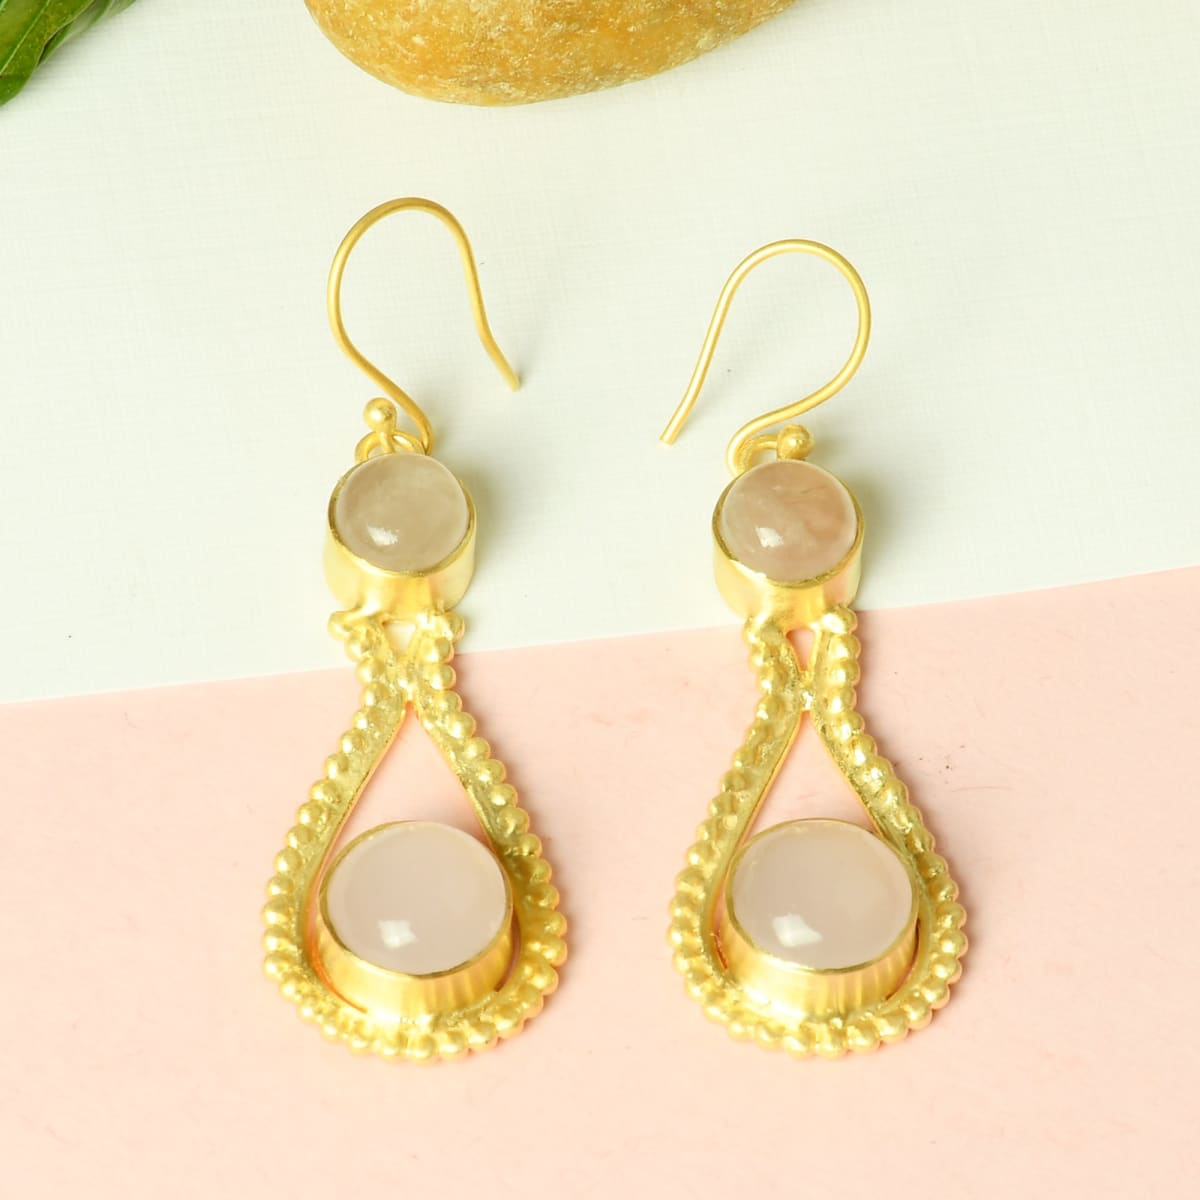 Super Quality 18K Matte Gold Plated Natural Rose Quartz Gemstone Mom Birthday Gift Earrings - by Bhagat Jewels